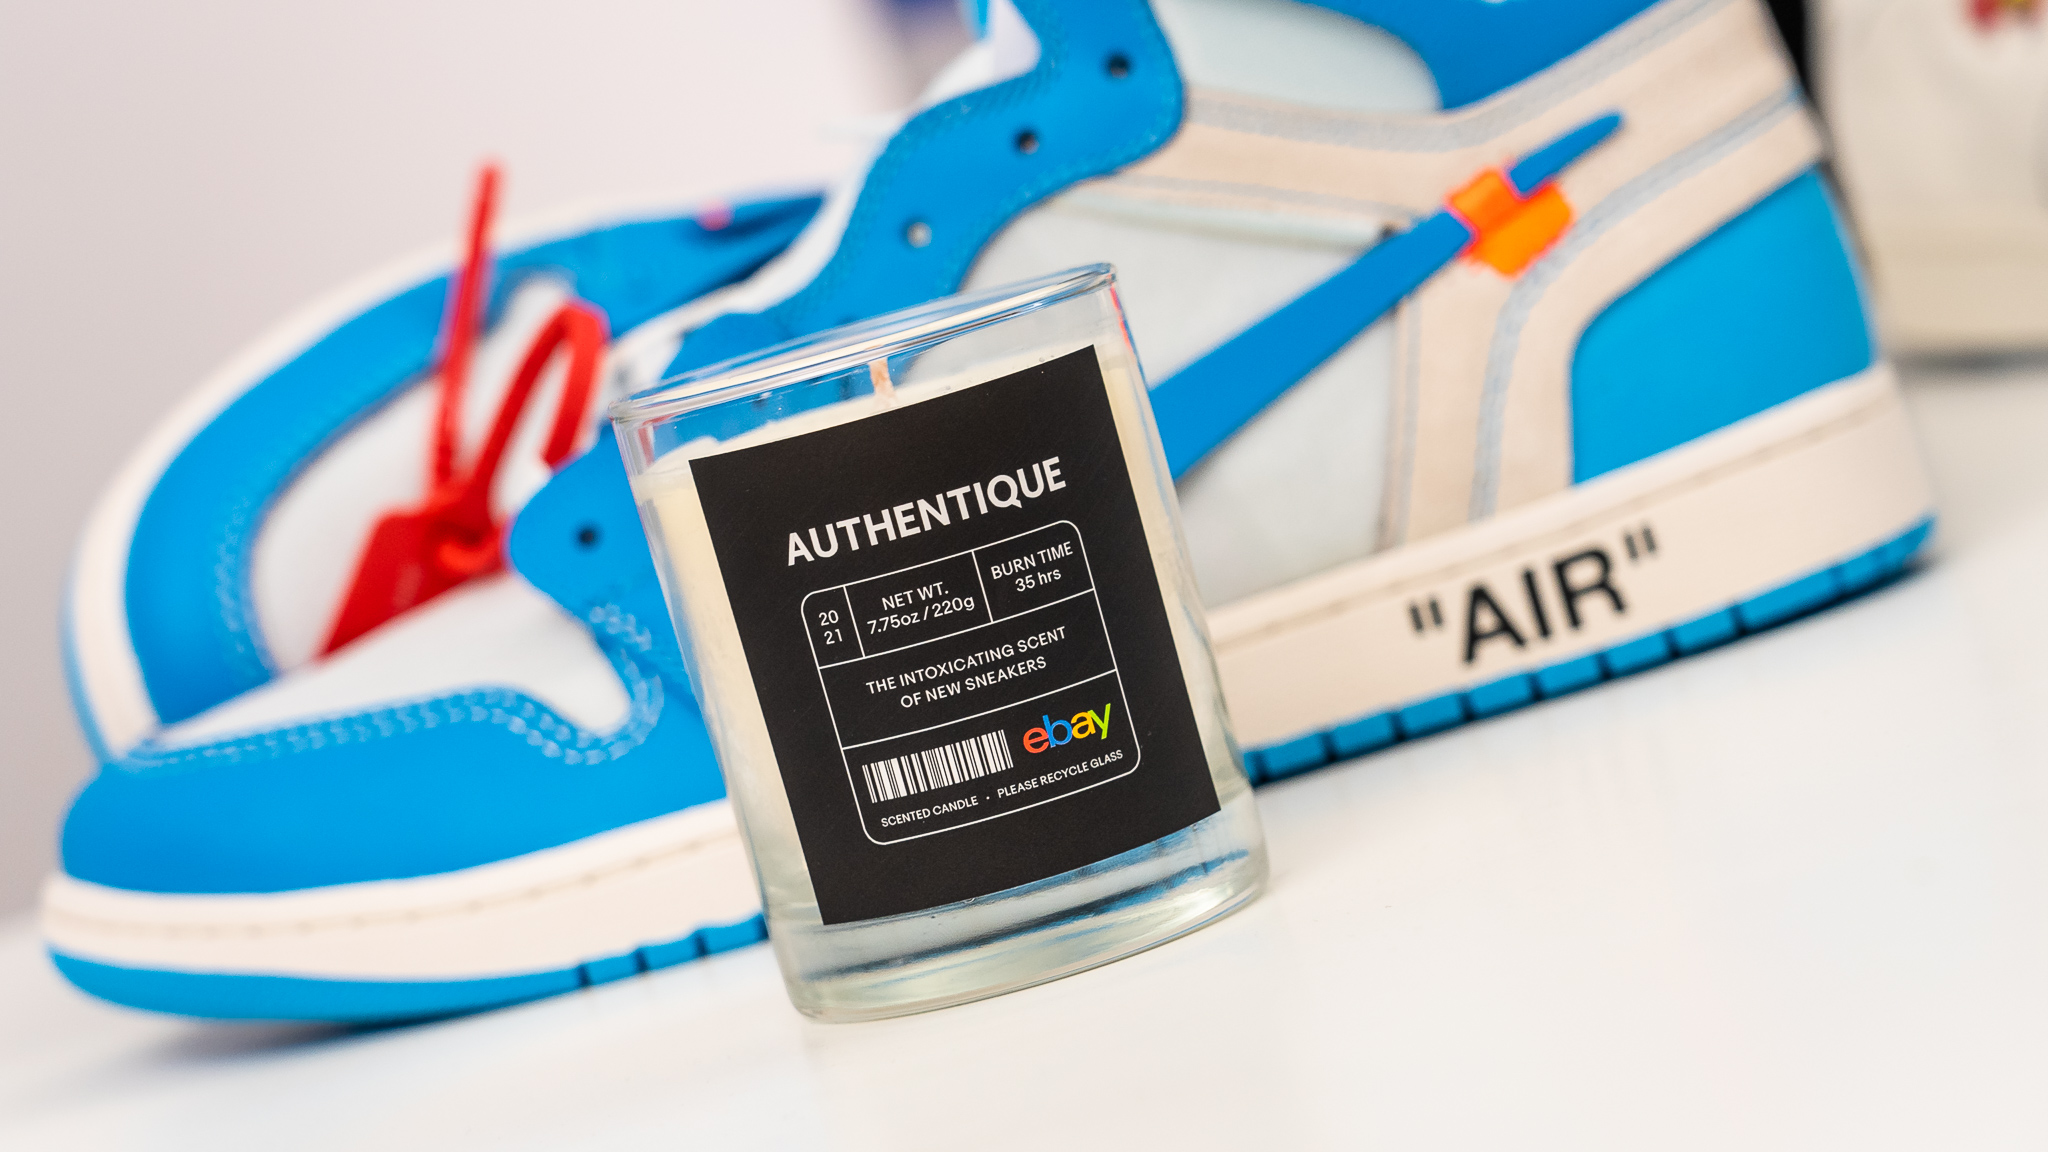 Ebay Authentique - La candela con all'aroma di sneakers nuove